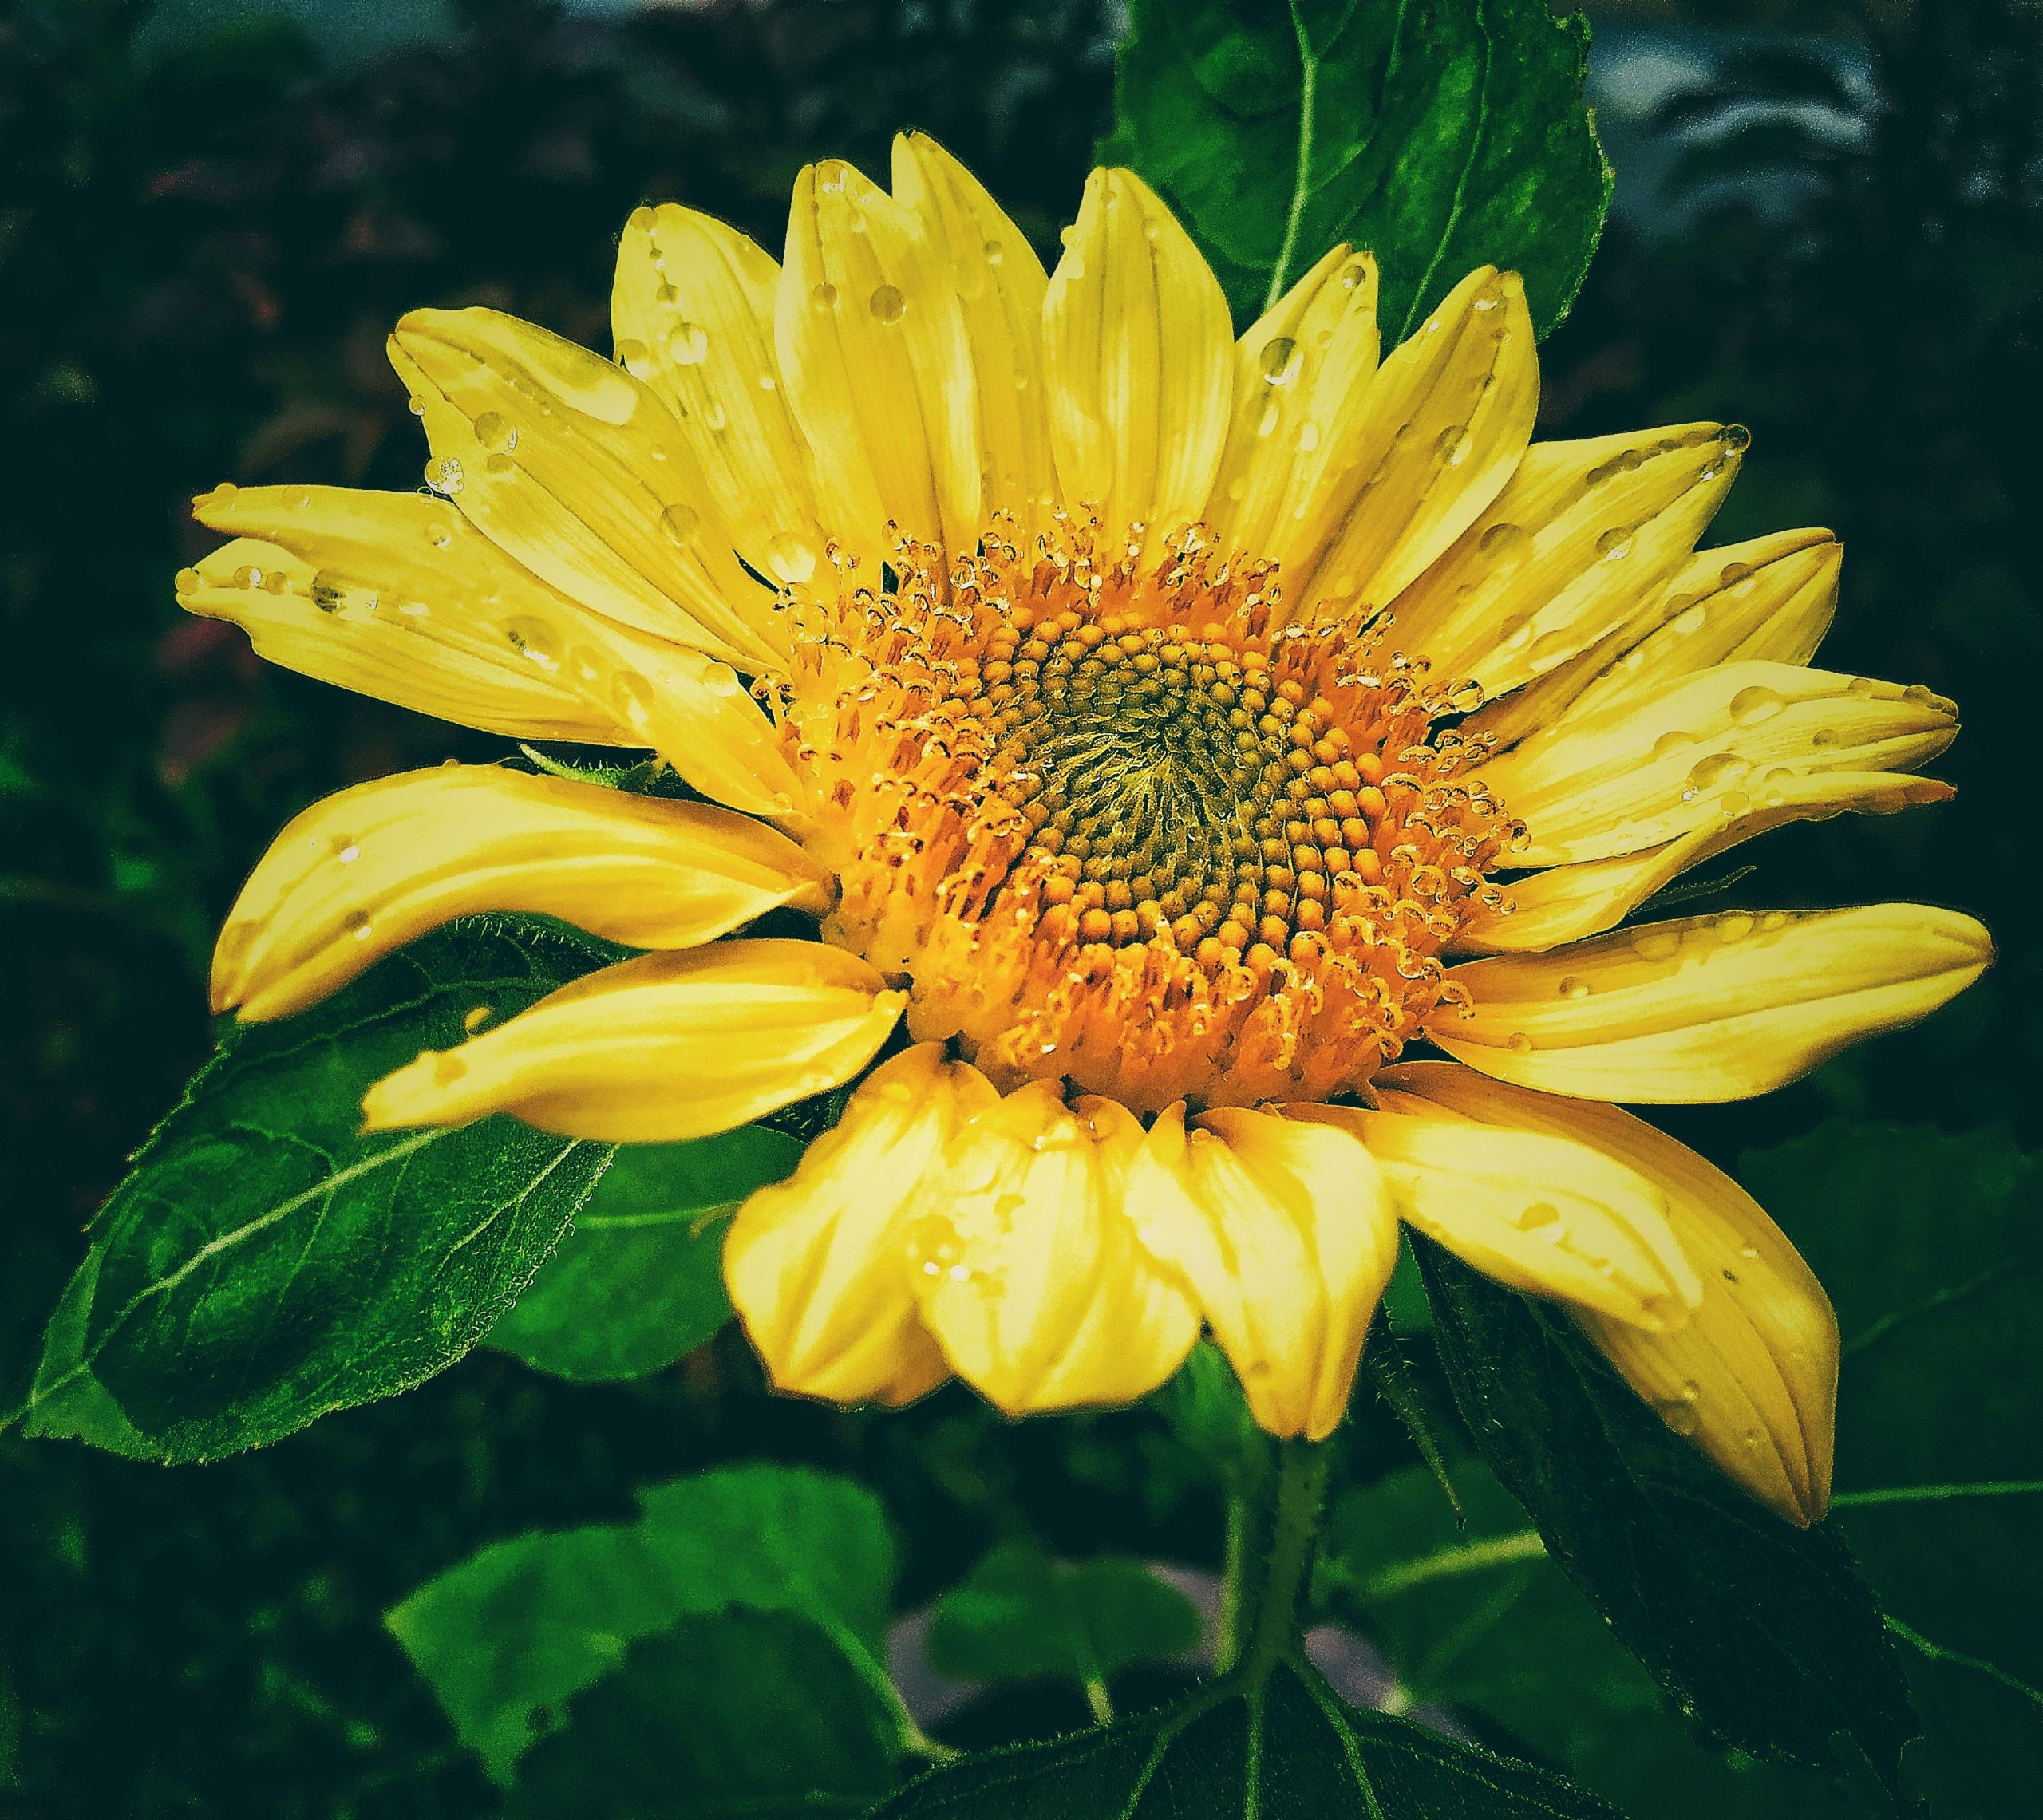 Shinning Sunflower with Droplets